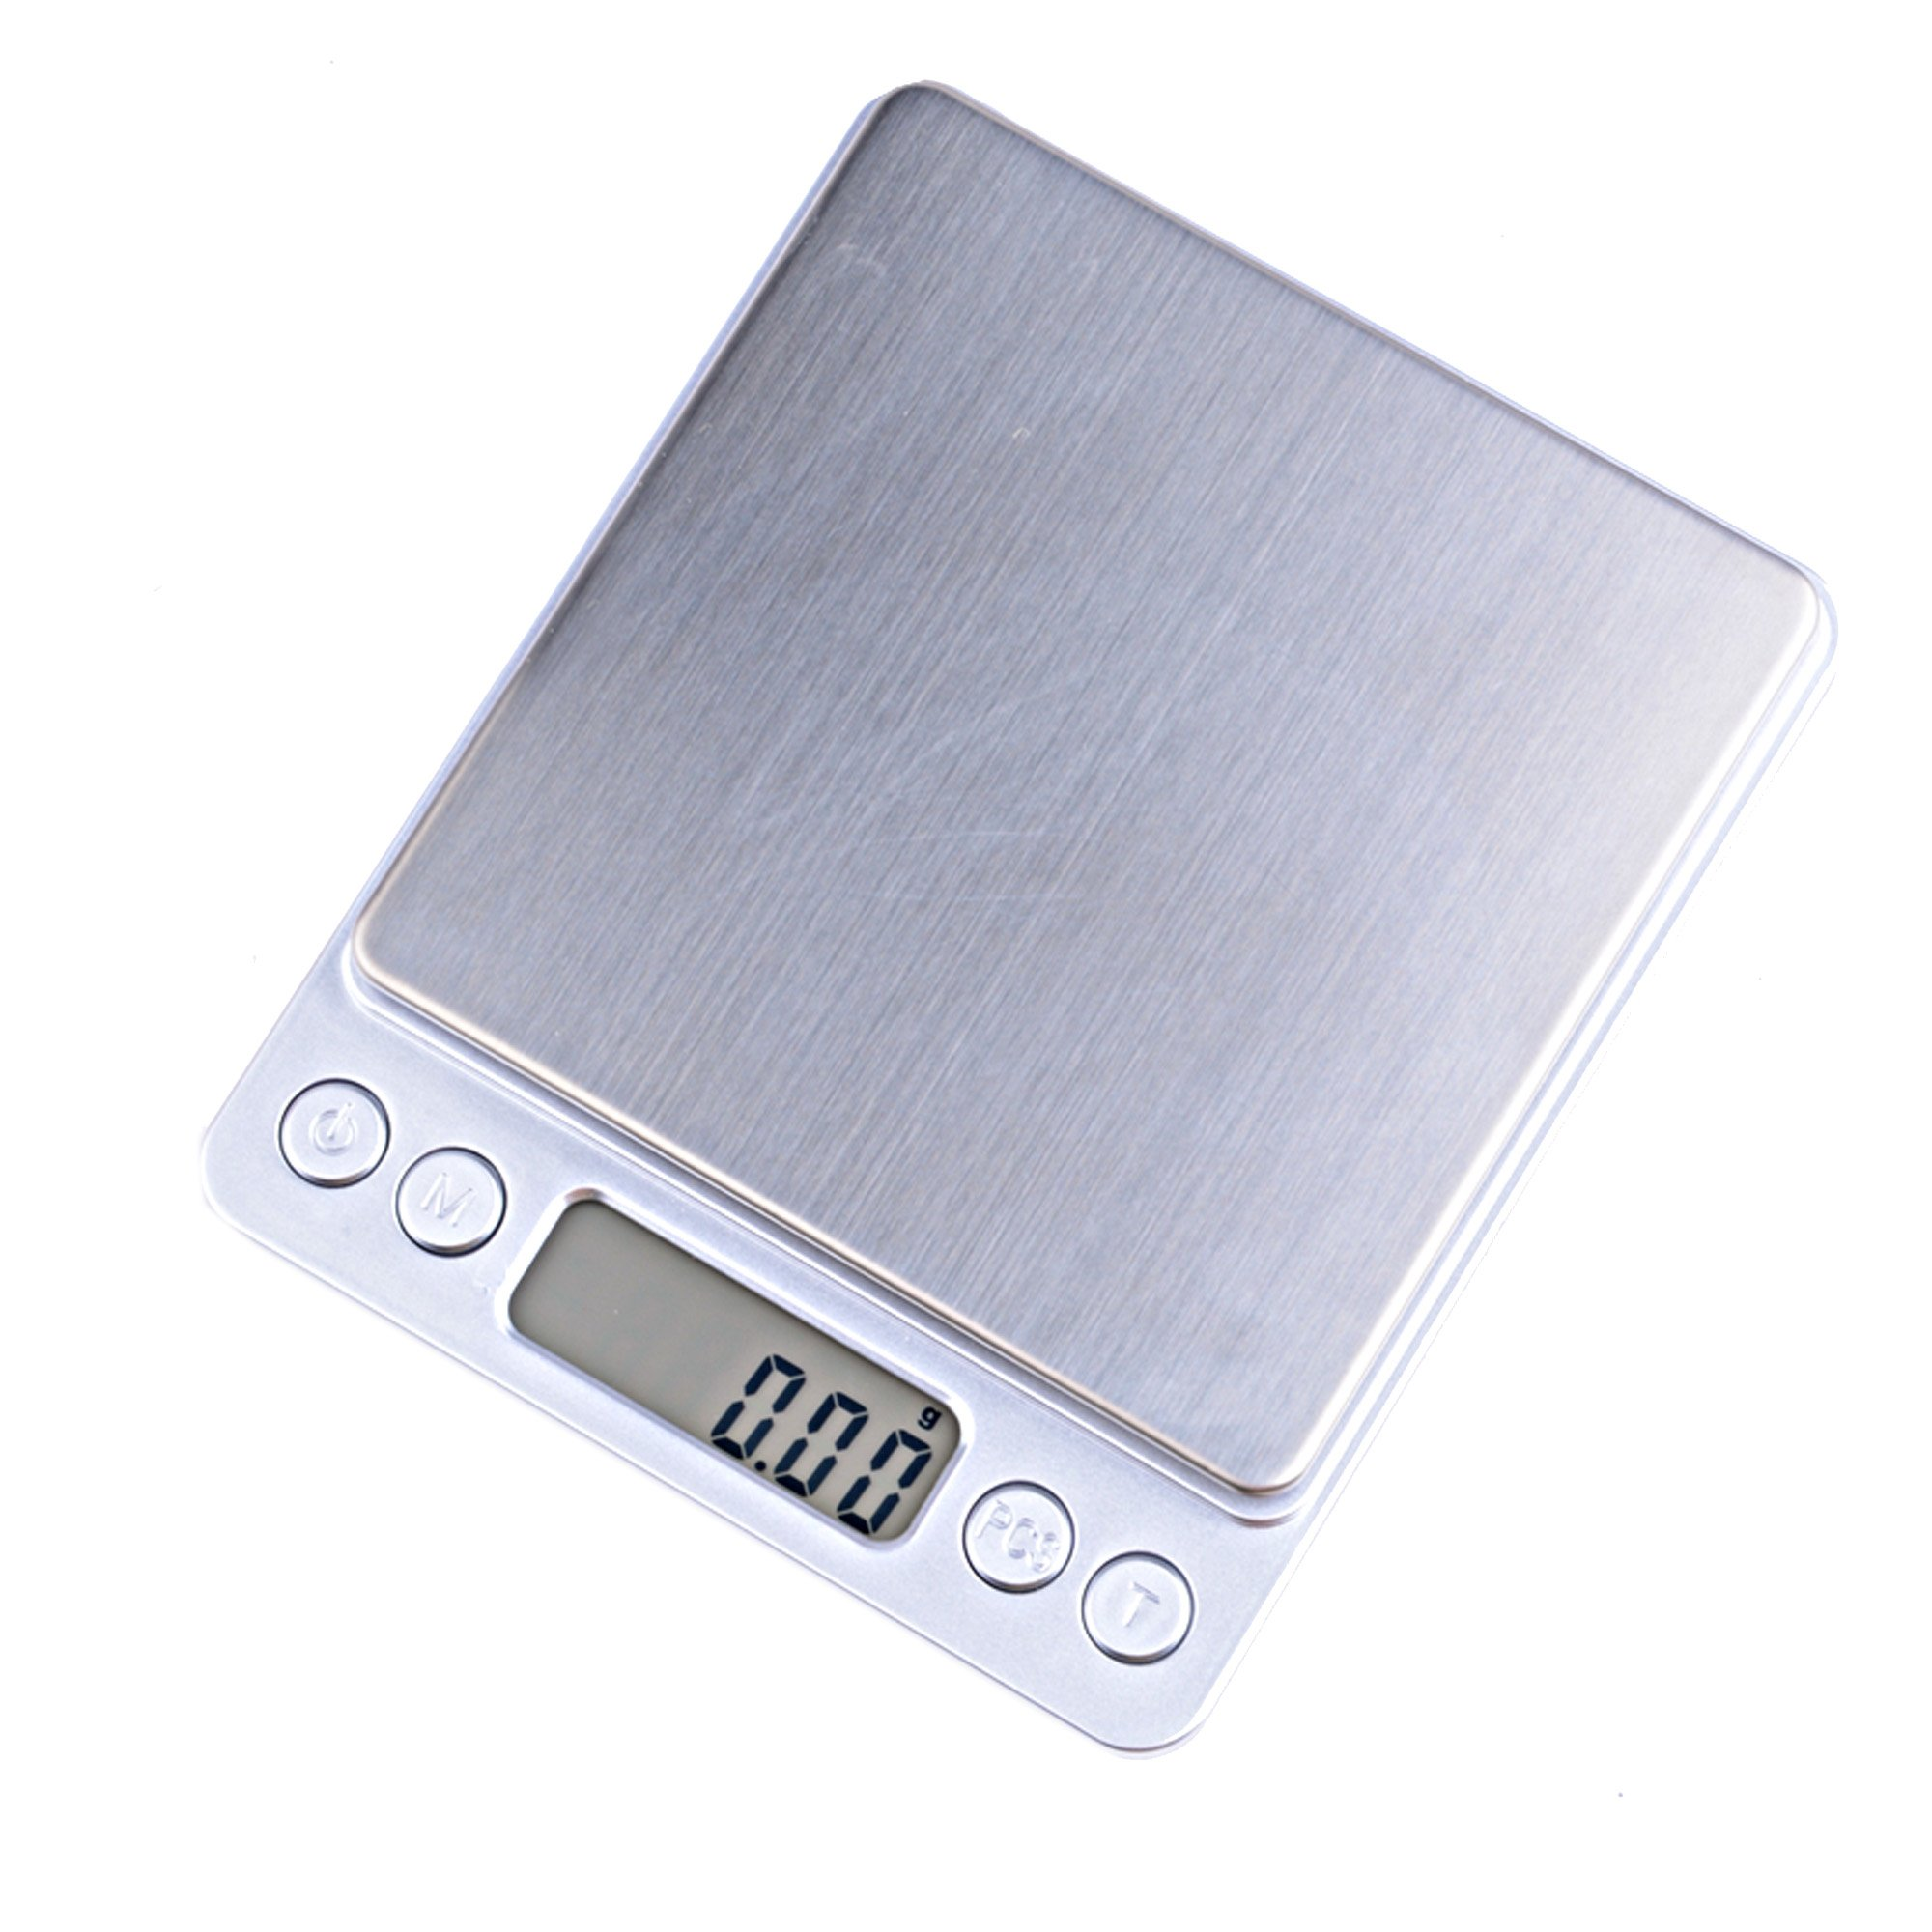 500g x 0.01g Digital Jewelry & Kitchen Precision Scale 1 W/Piece Counting ACCT-500 .01 gram with Tray